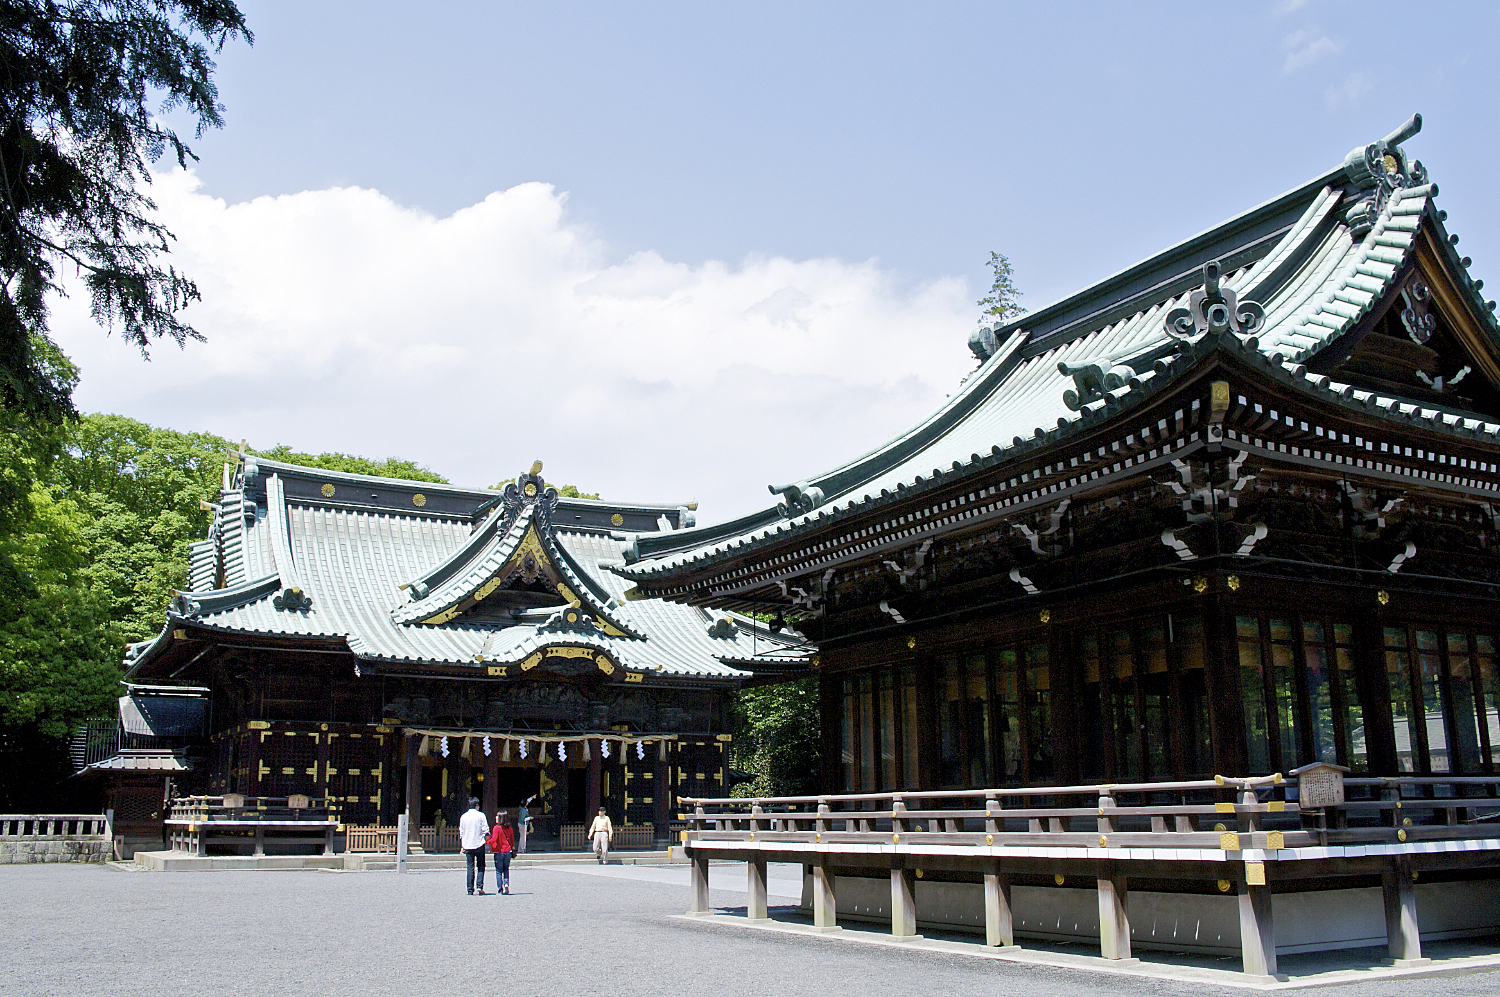 Mishima Taisha Shrine